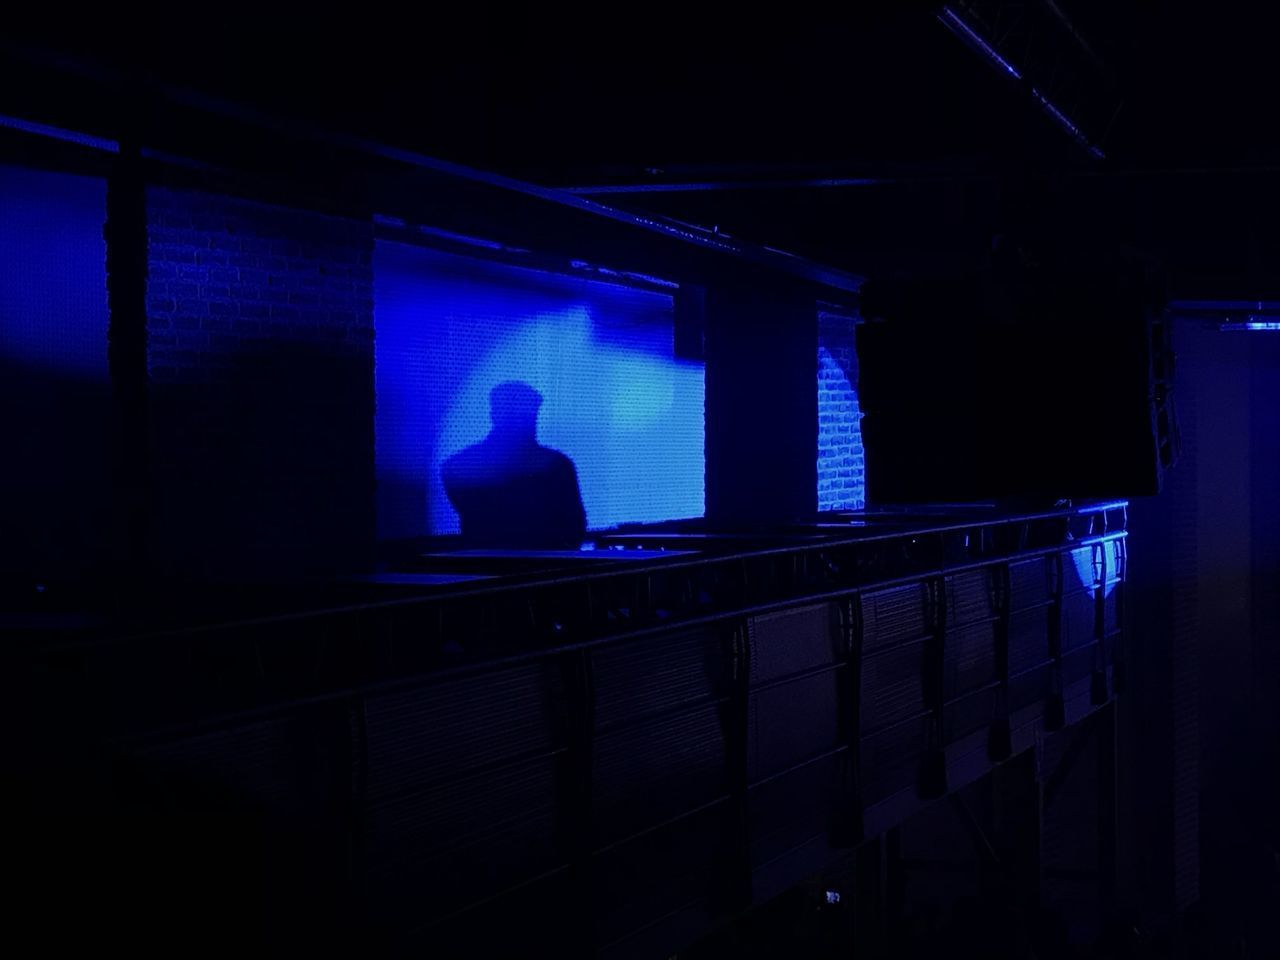 indoors, one person, real people, illuminated, window, dark, night, sitting, men, railing, architecture, silhouette, blue, rear view, built structure, lighting equipment, wall - building feature, lifestyles, nightlife, contemplation